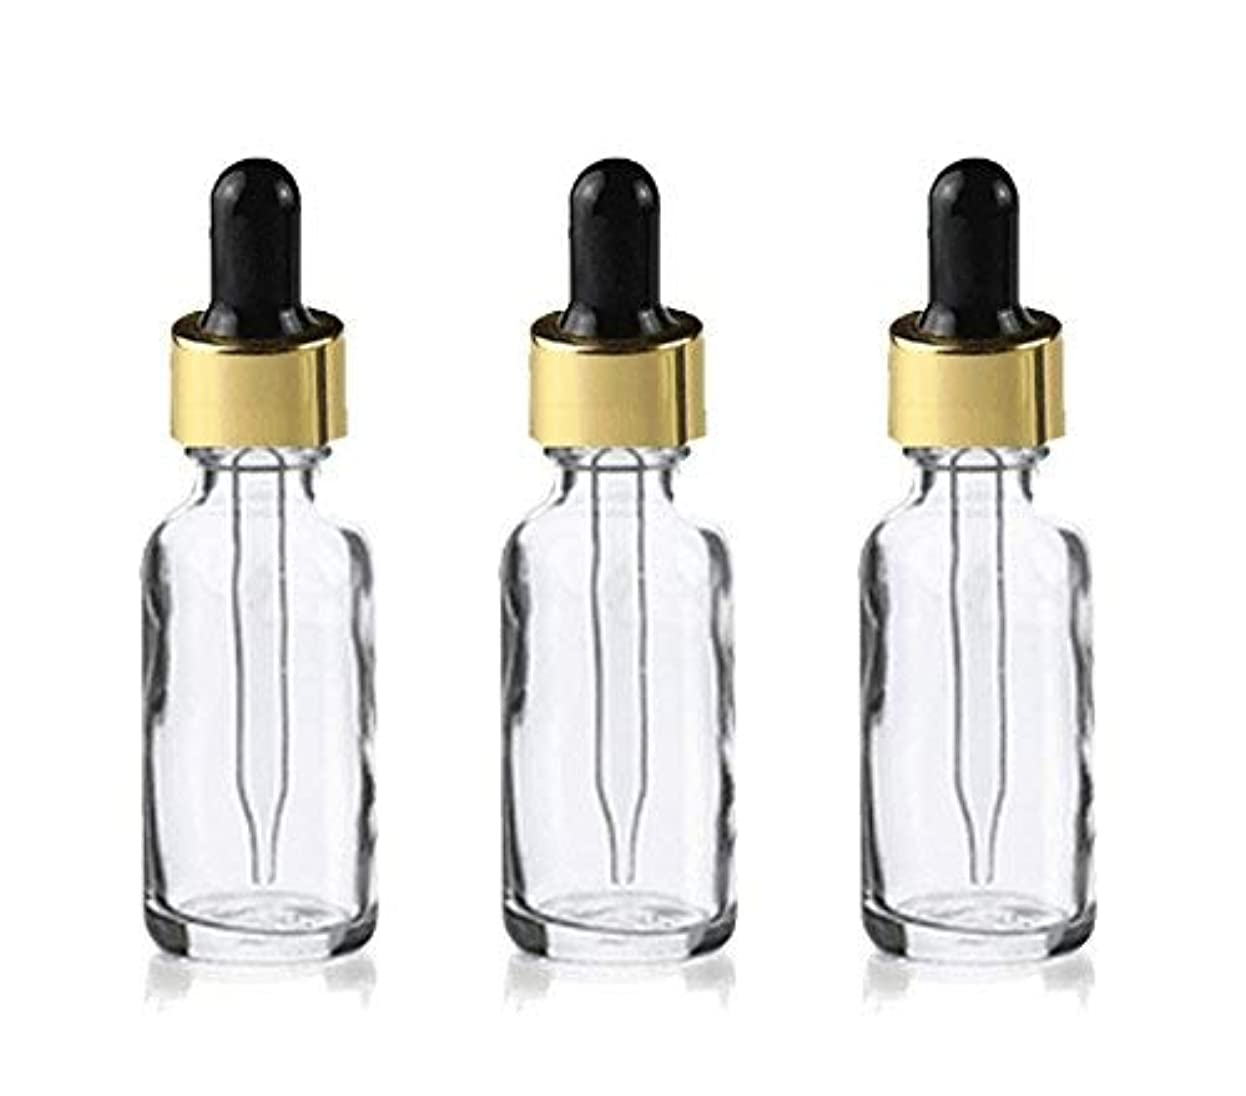 一過性料理をする議会Grand Parfums Upscale 30ml Boston Round Dropper Bottle, Clear Glass with Gold Aluminum Hood and Black Bulb Dropper...